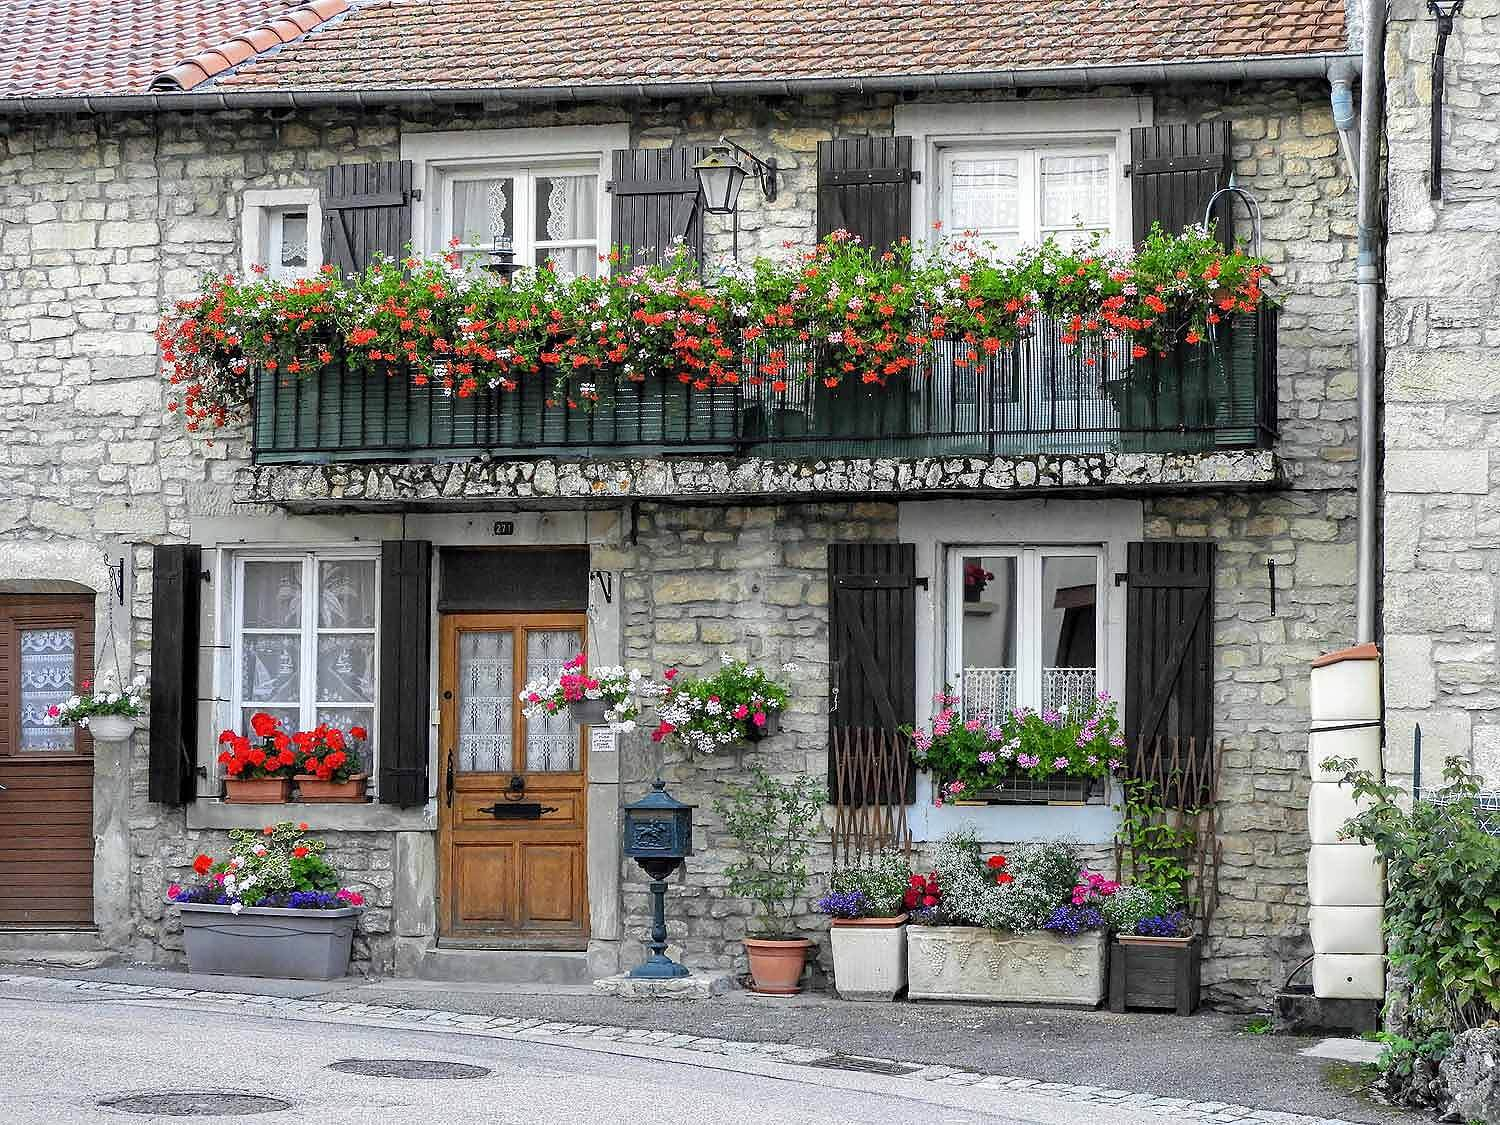 france-epinal-house-pretty-flowers.jpg